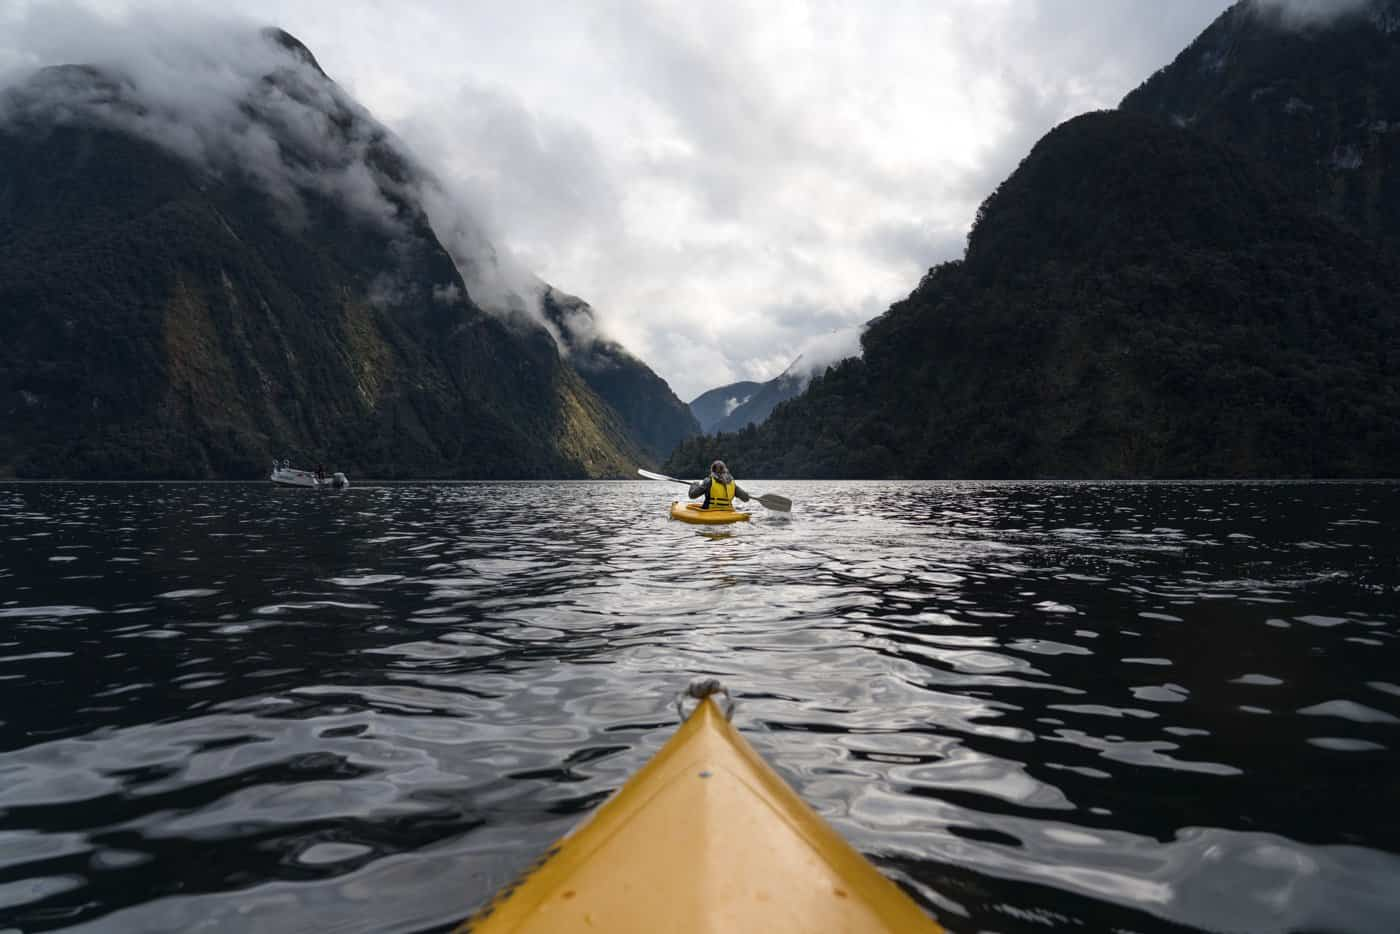 Action-packed shots of a beautiful day kayaking Doubtful Sound.